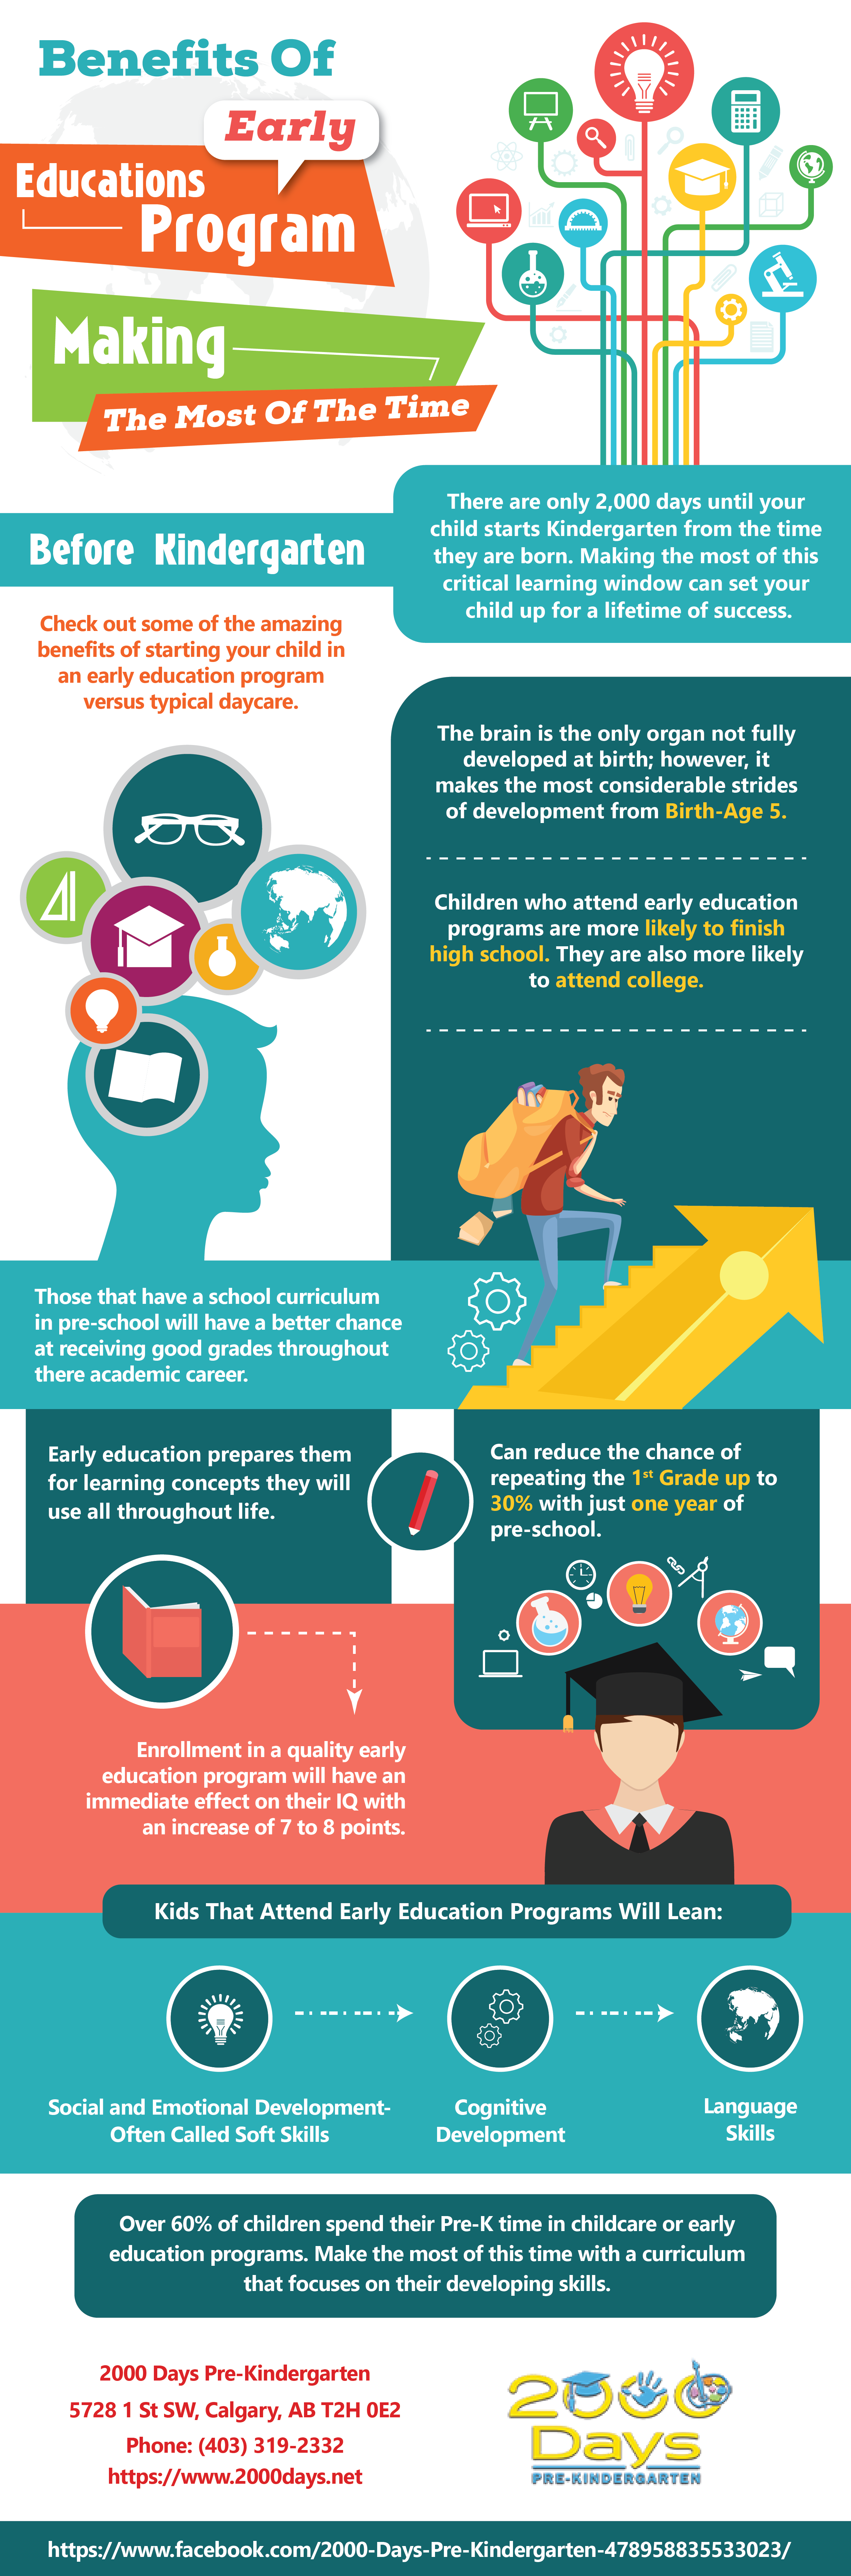 Benefits of Early Education Programs